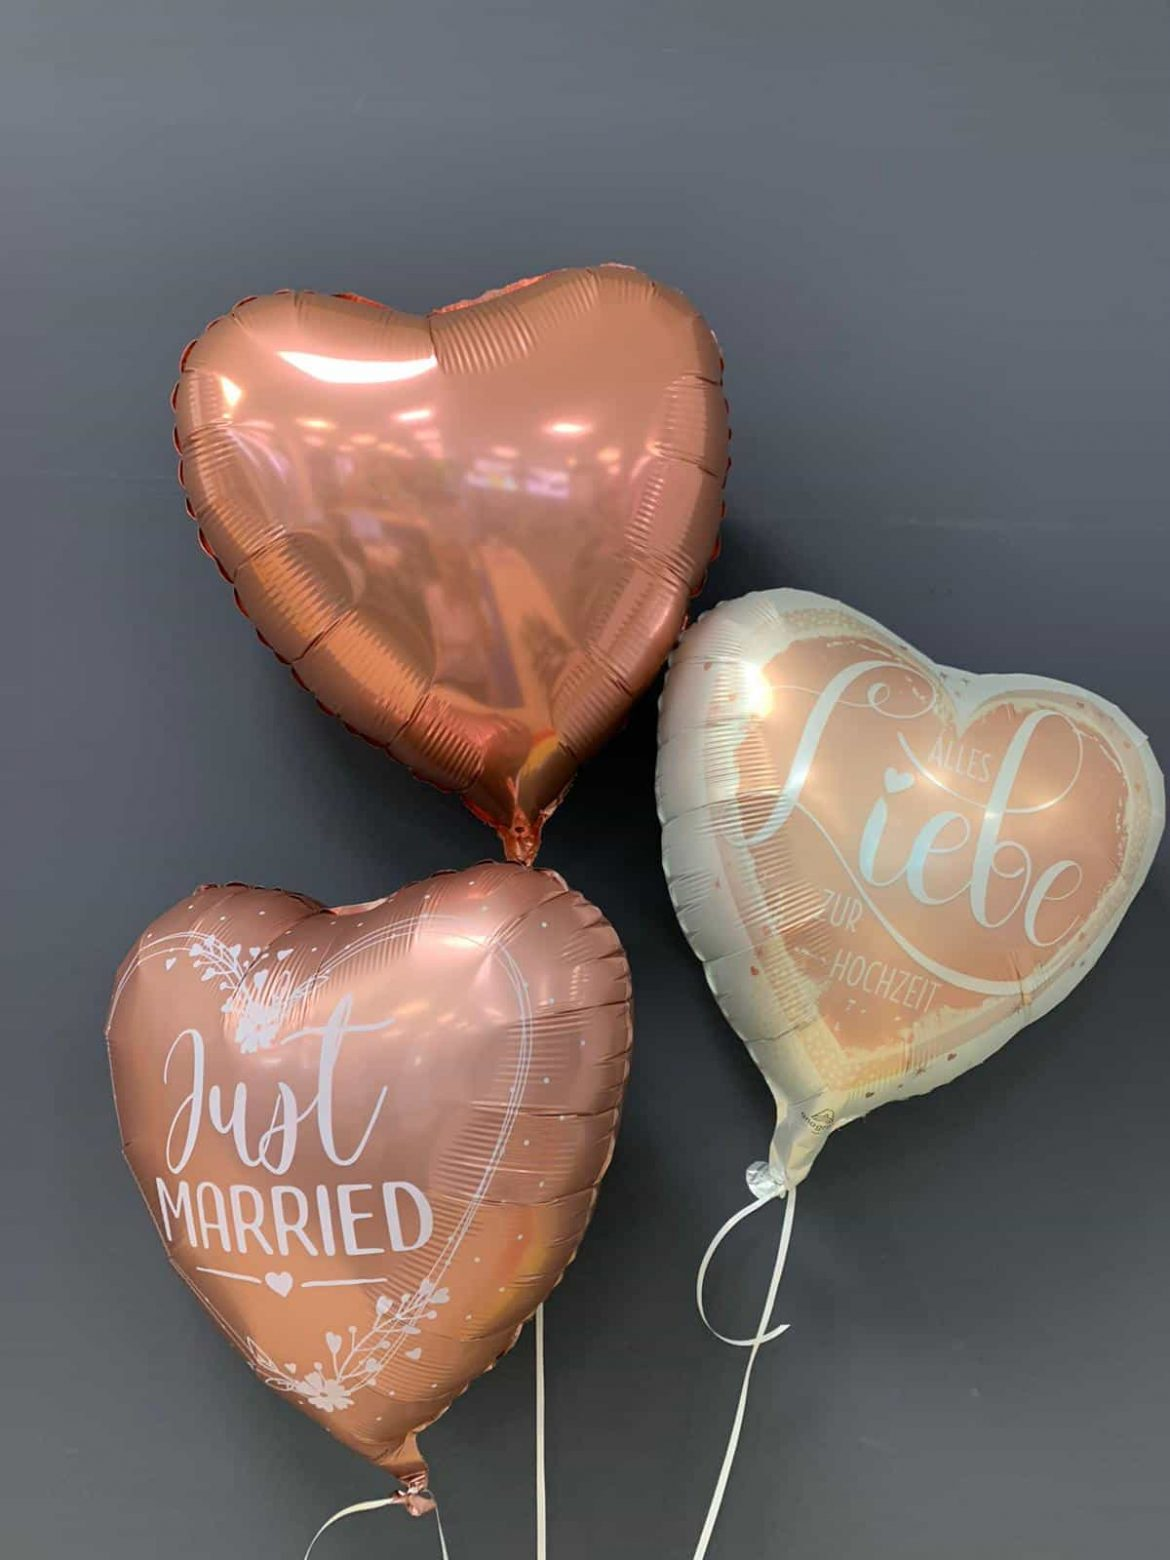 Just Married € 5,90<br />Alles Liebe € 5,90<br />Dekoballon € 4,50 1